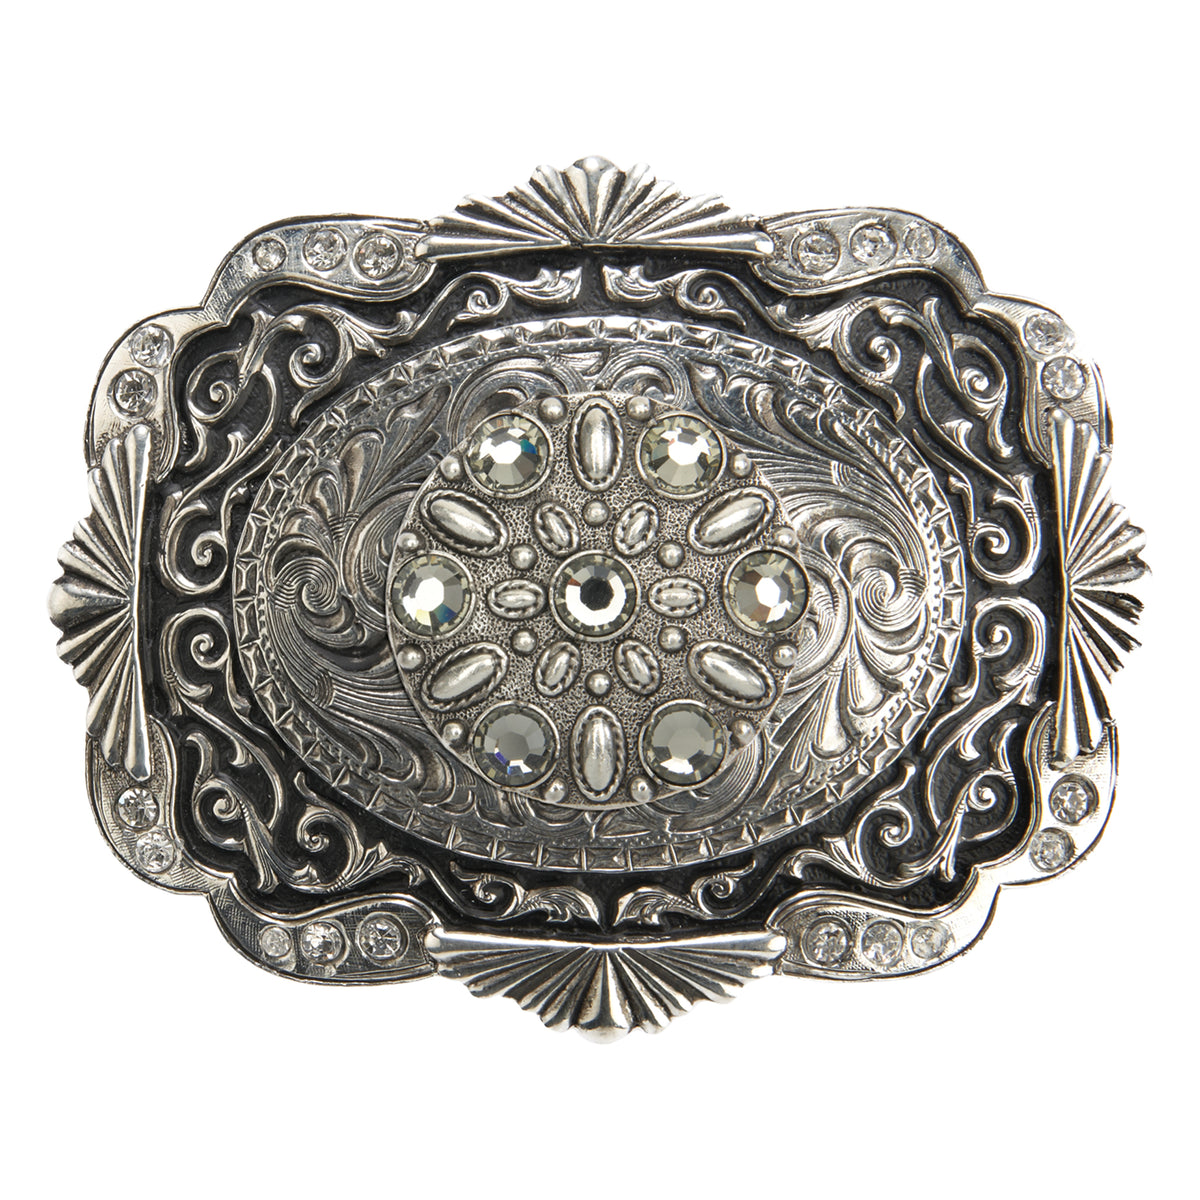 Scalloped Buckle with Black Rhinestone Motif